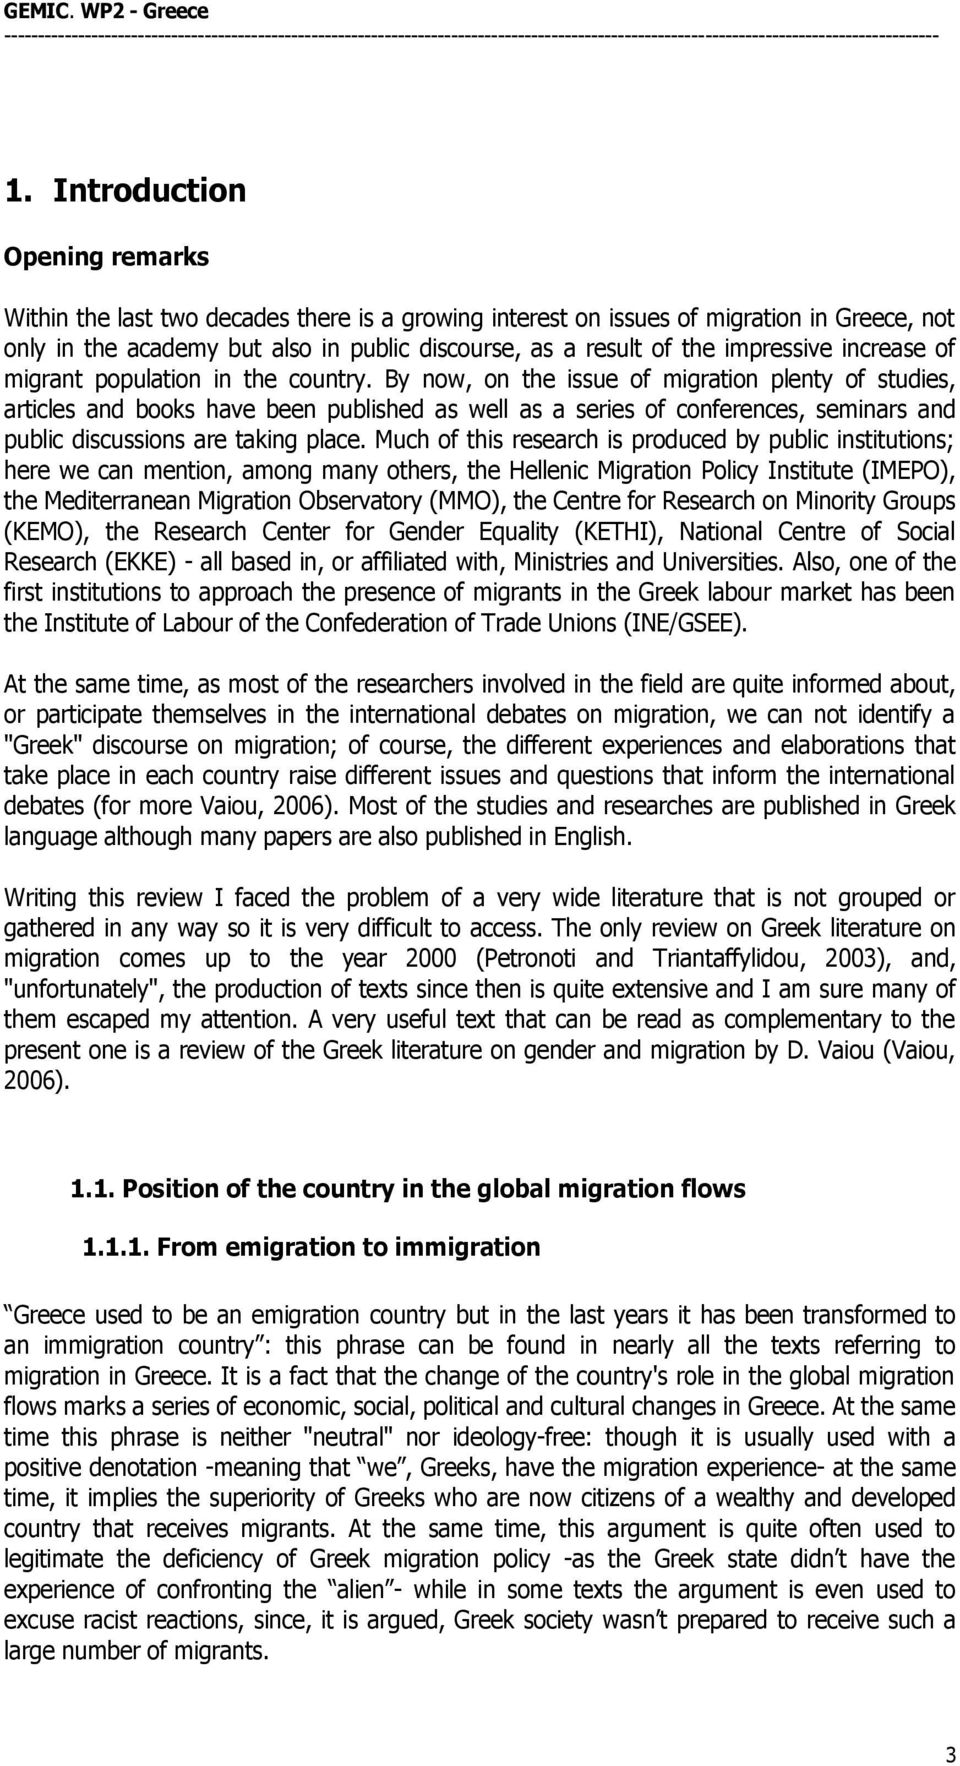 By now, on the issue of migration plenty of studies, articles and books have been published as well as a series of conferences, seminars and public discussions are taking place.